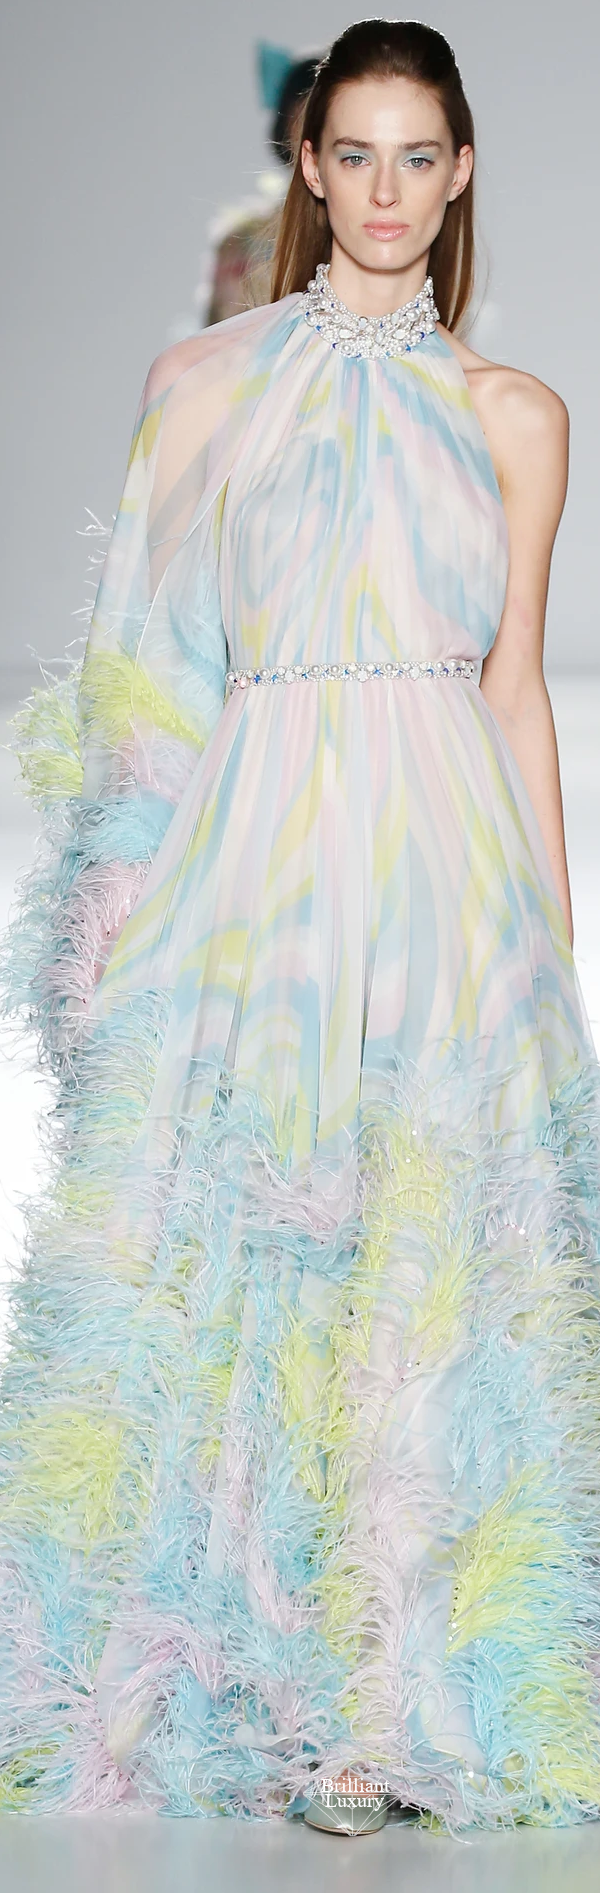 Ralph & Russo pale pink oceana and chartreuse printed silk chiffon gown enriched with xilions crystals and pearls and finished with multi-coloured ostrich feathers #brilliantluxury